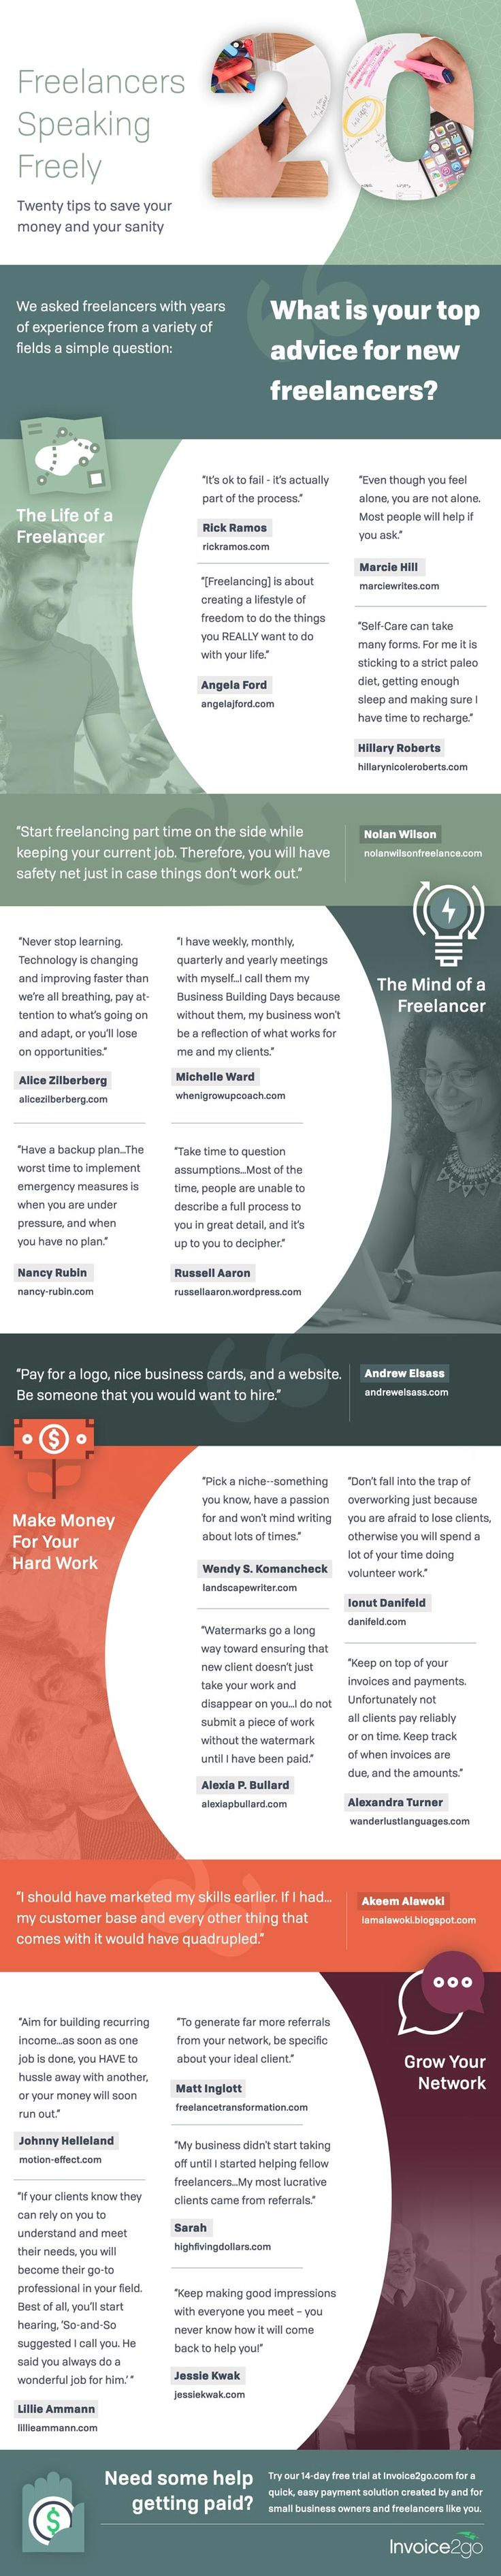 What if you knew these 20 advice when starting freelancing? 20 very insightful tips for new Freelancers on an infographic for you to harvest great advice. Consider this a modern stone-tablet of great knowledge - #freelancing #workfromhome…